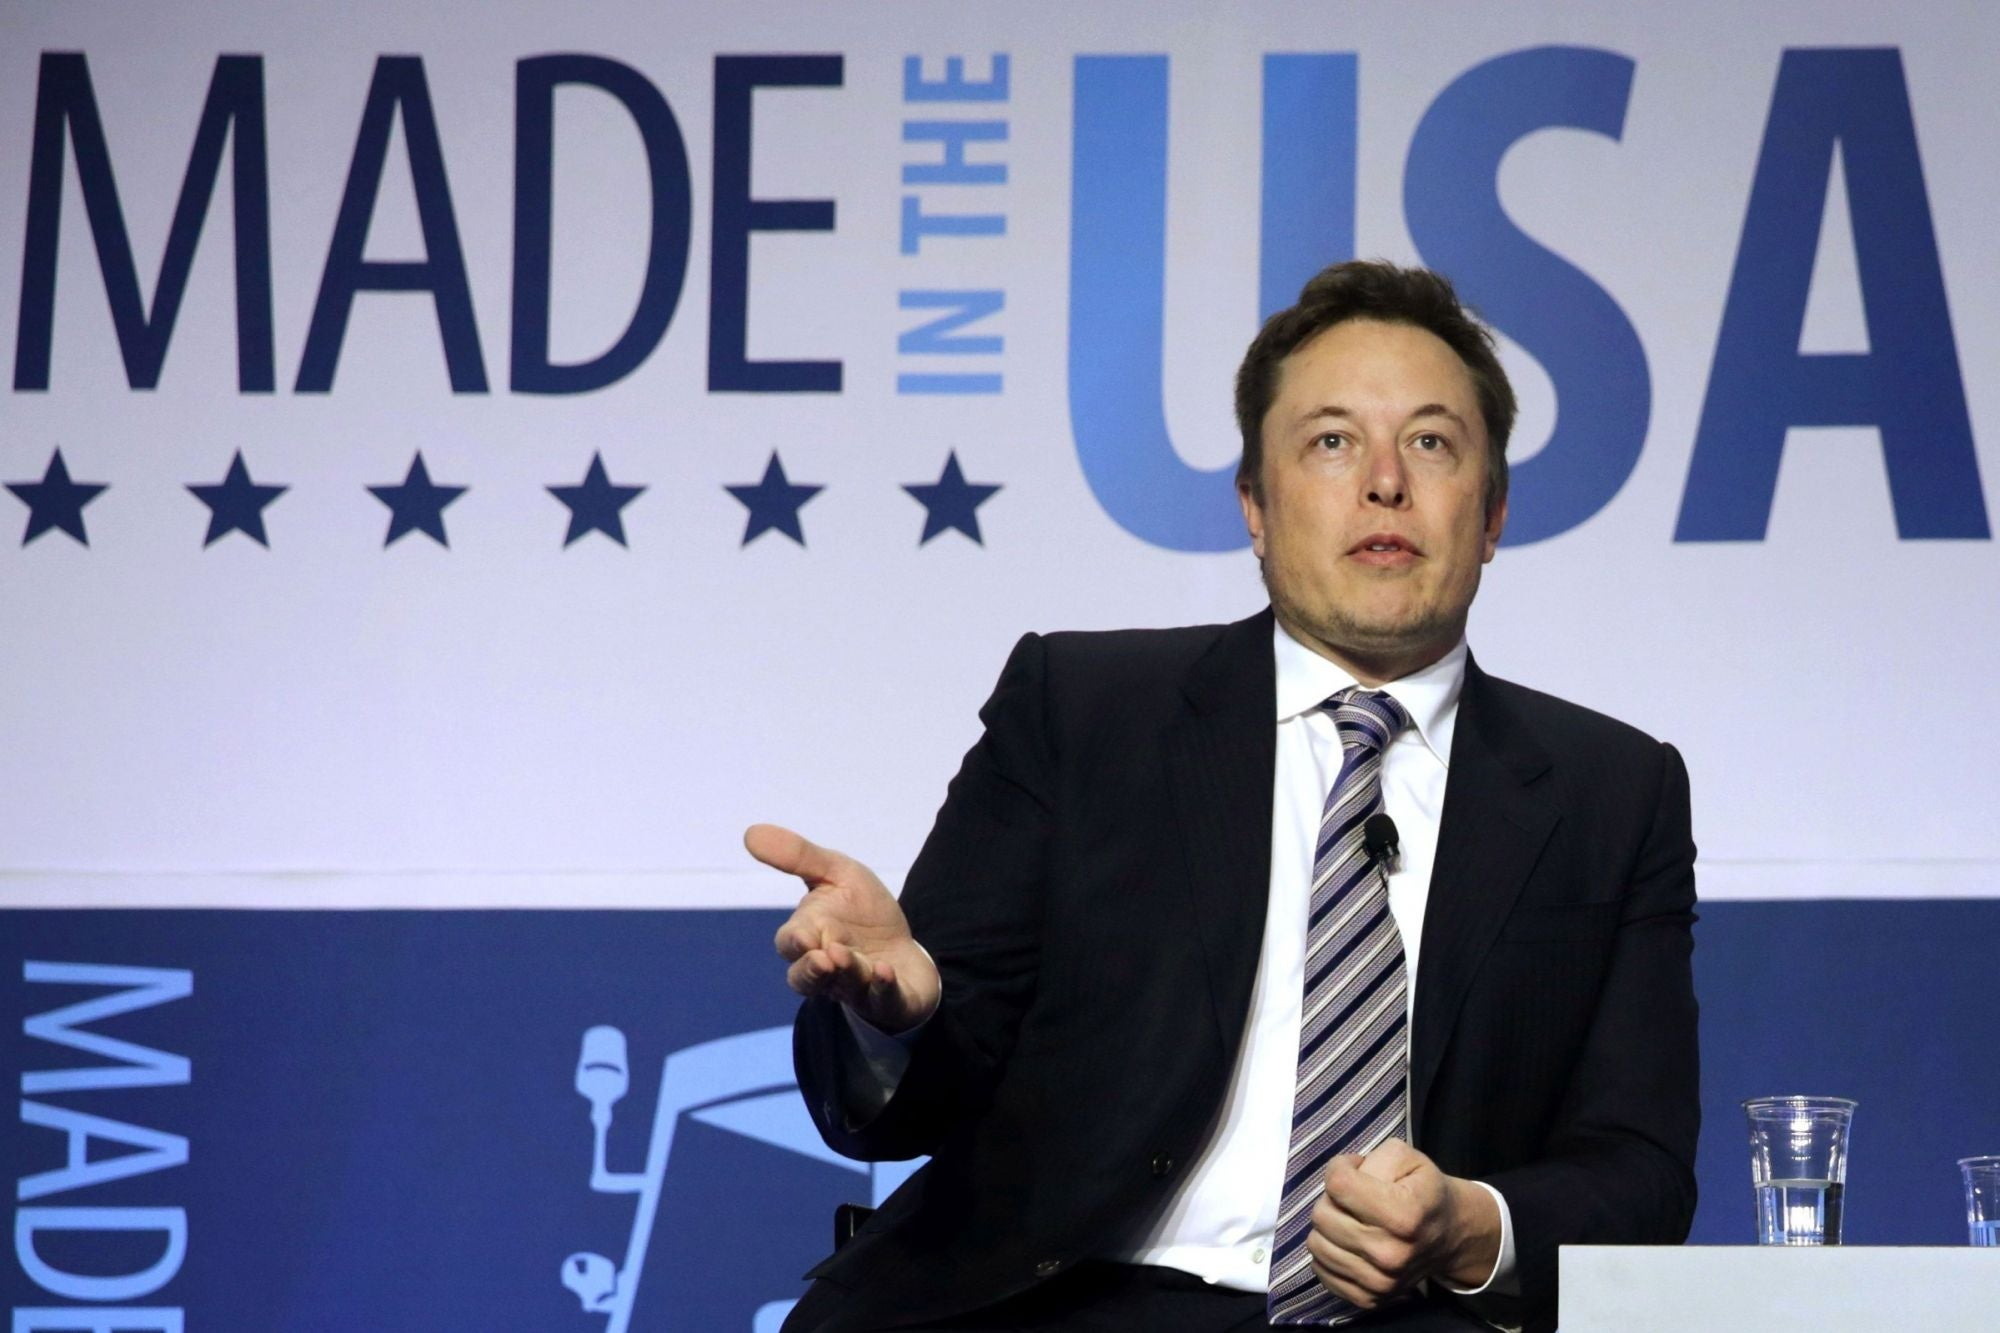 Tesla is Raising $2 Billion in Funding Two Days After Elon Musk Said It Didn't Need To